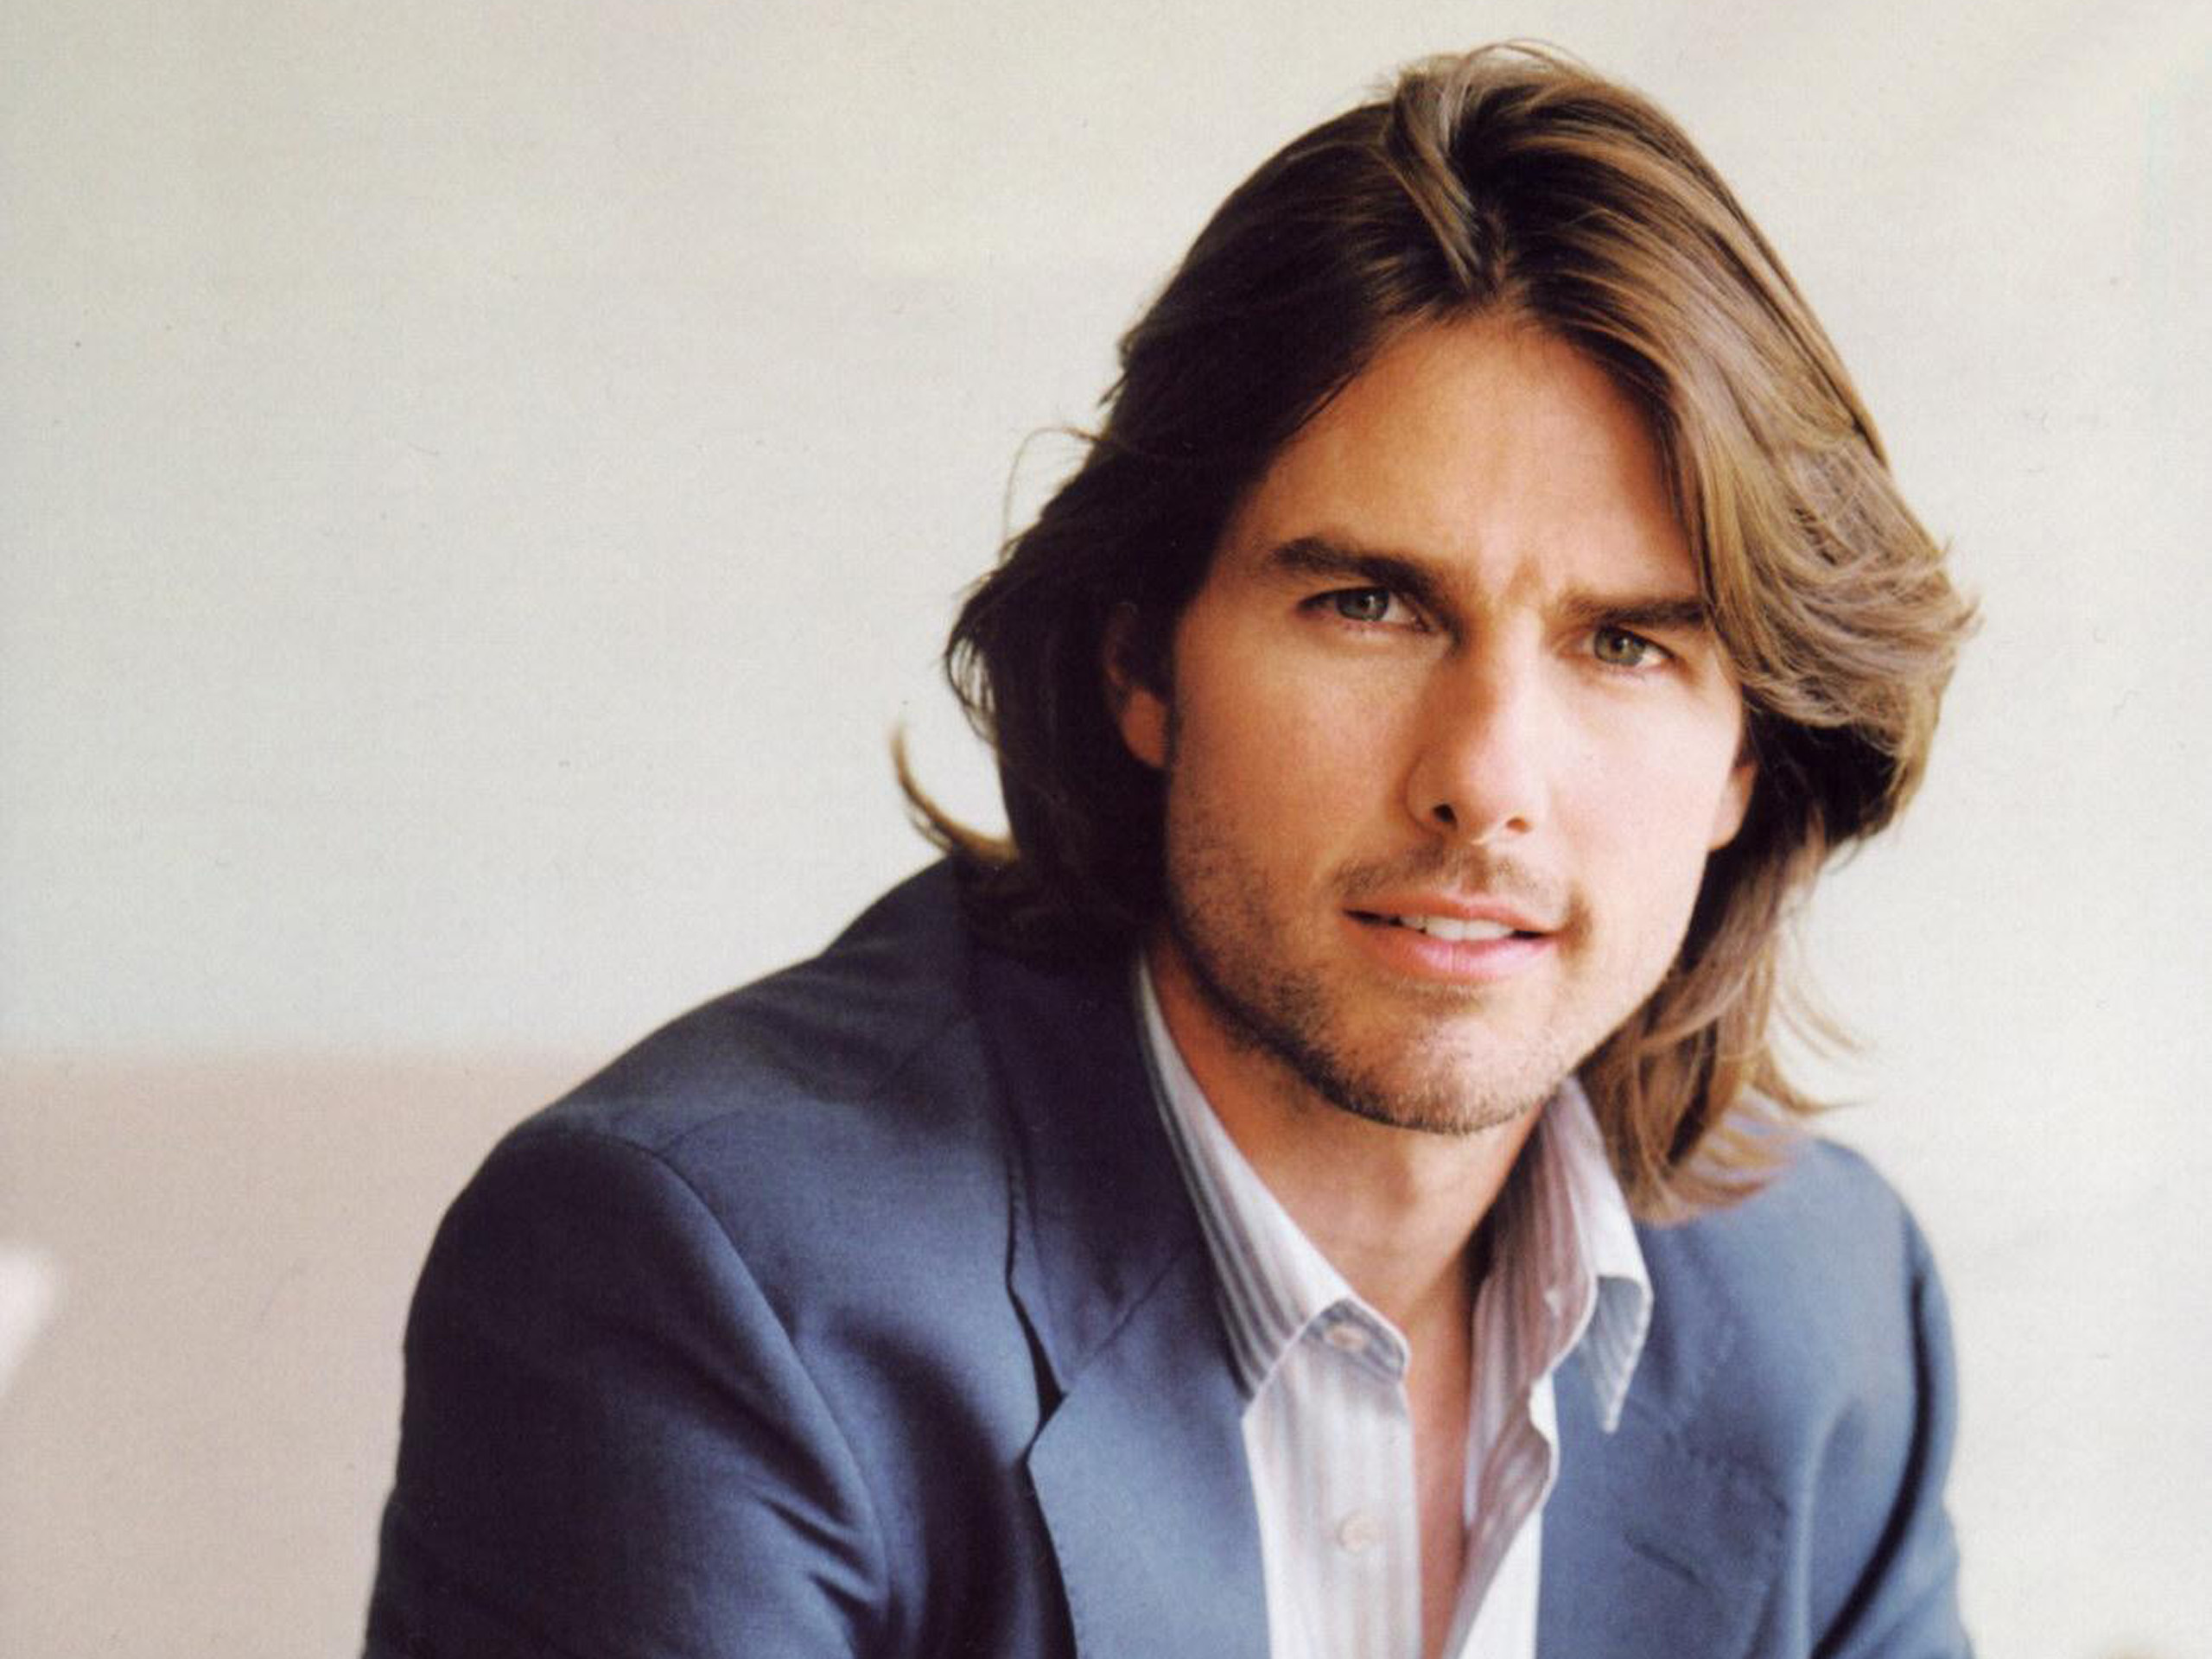 cool wallpapers images photos download Tom Cruise Cool Wallpapers 2560x1920